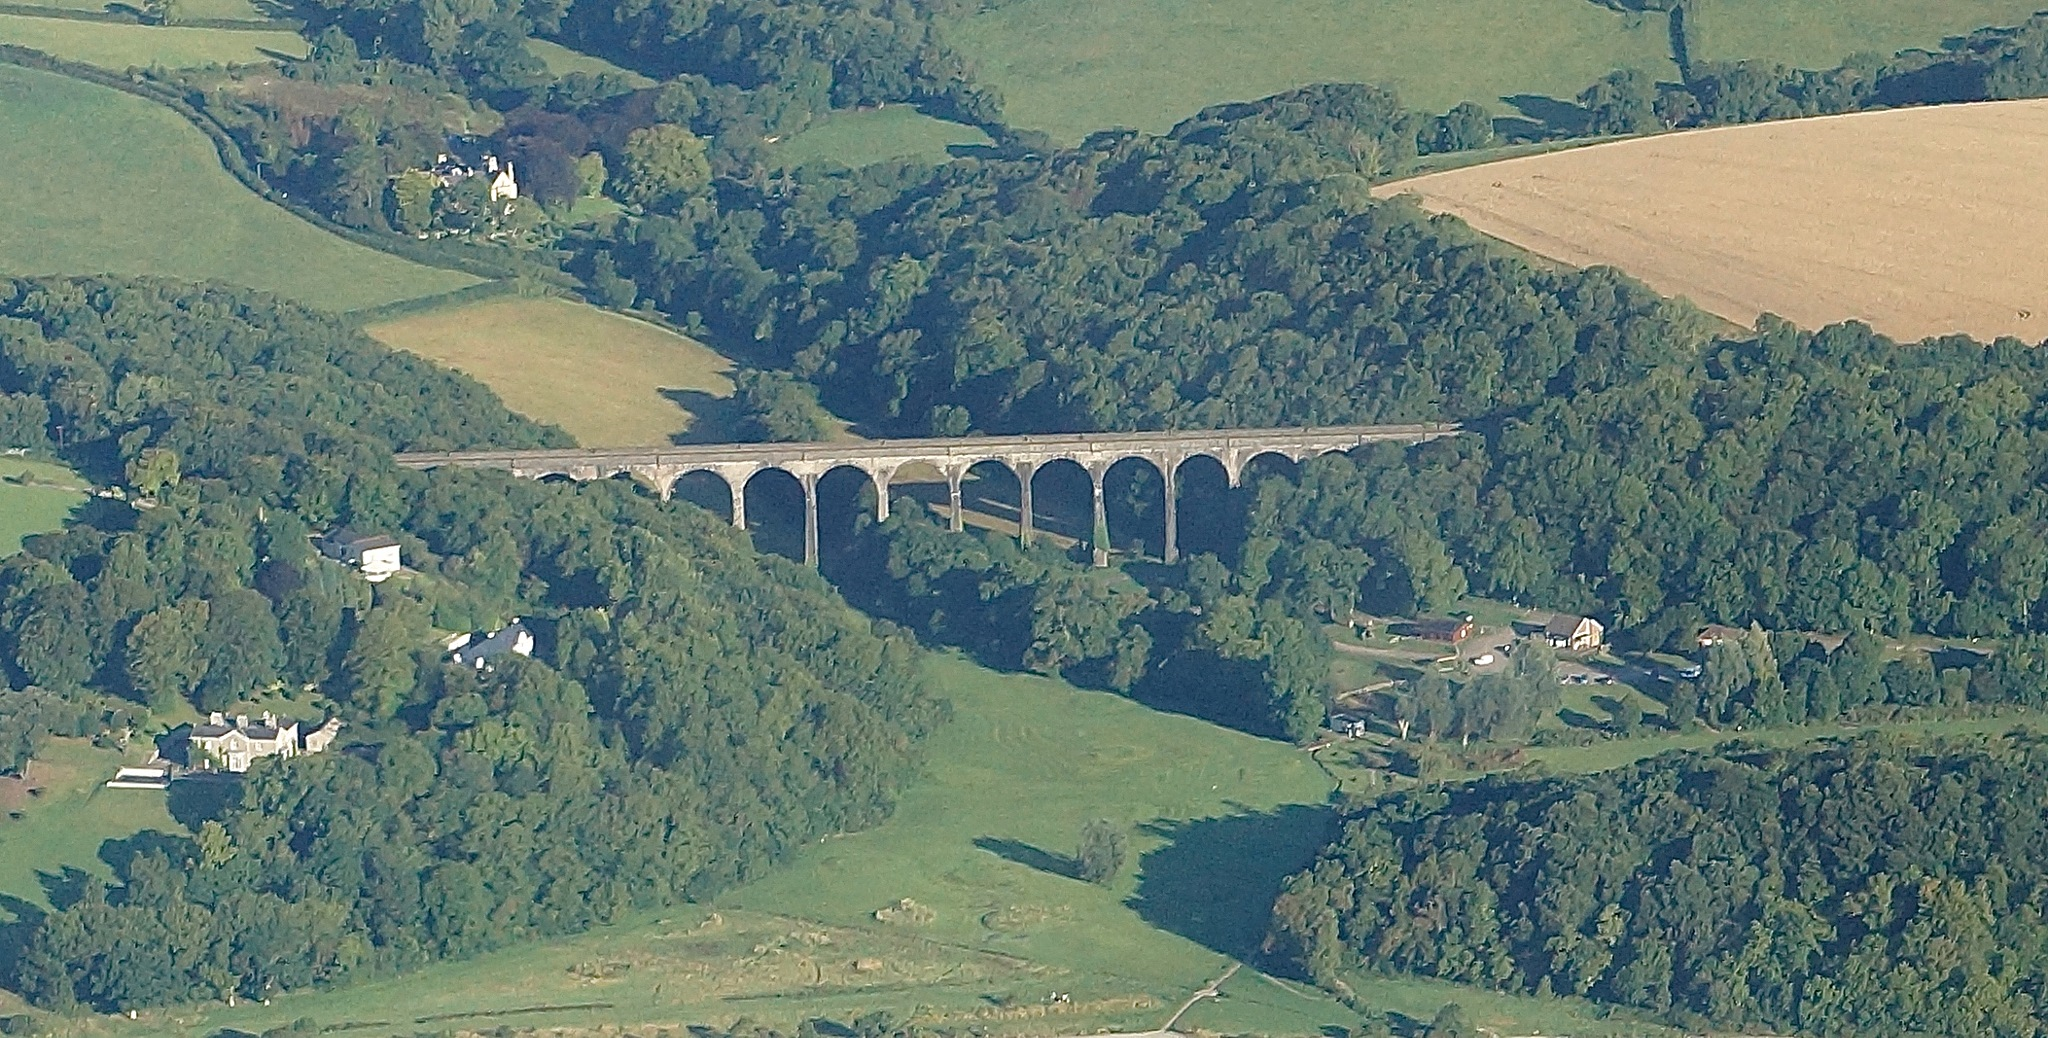 Porthkerry viaduct by JohnBulpin